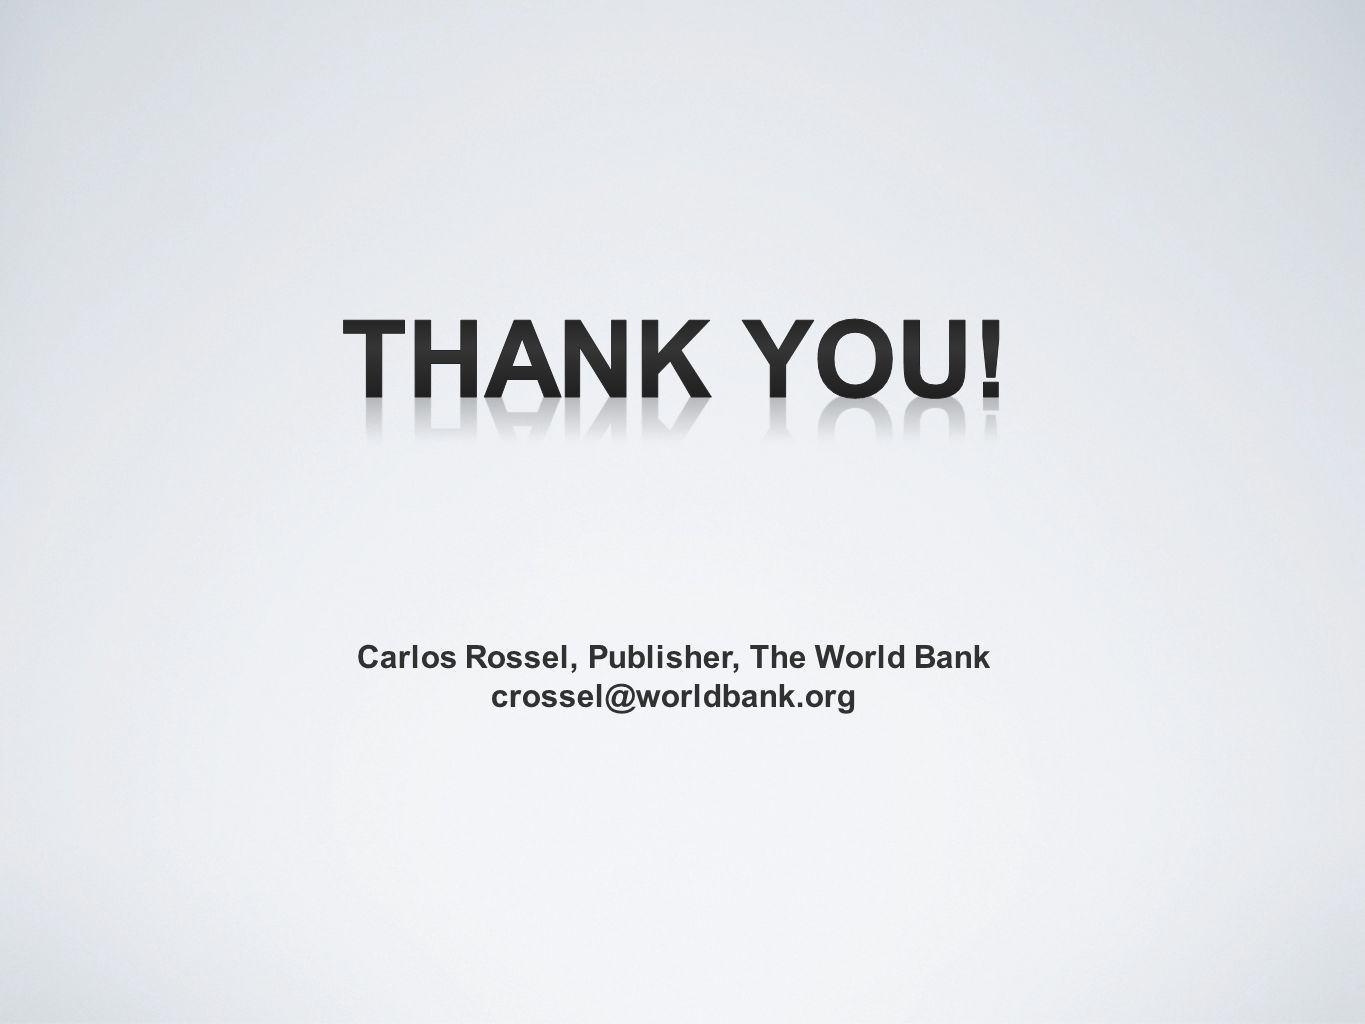 Carlos Rossel, Publisher, The World Bank